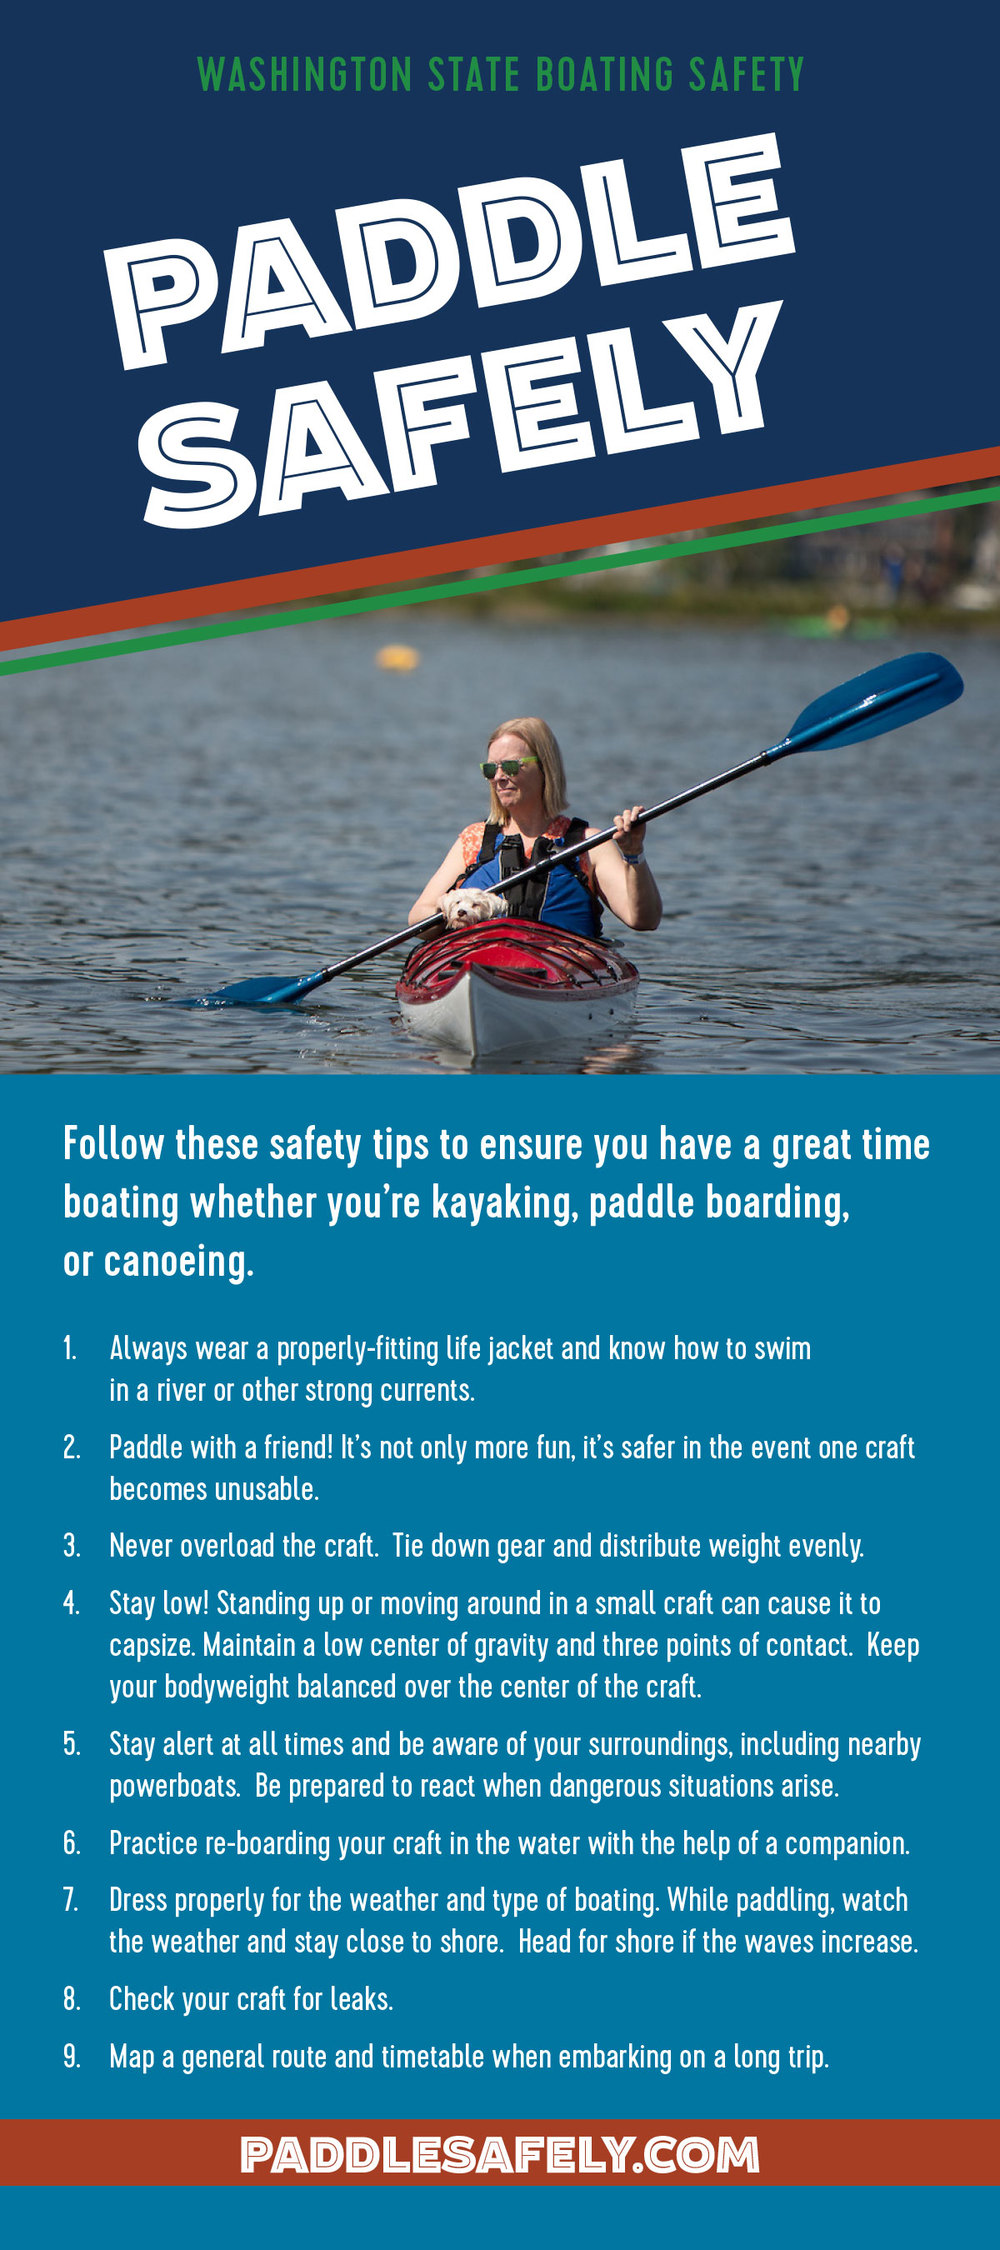 Paddle-Safely-Rack-Card-001-1.jpg